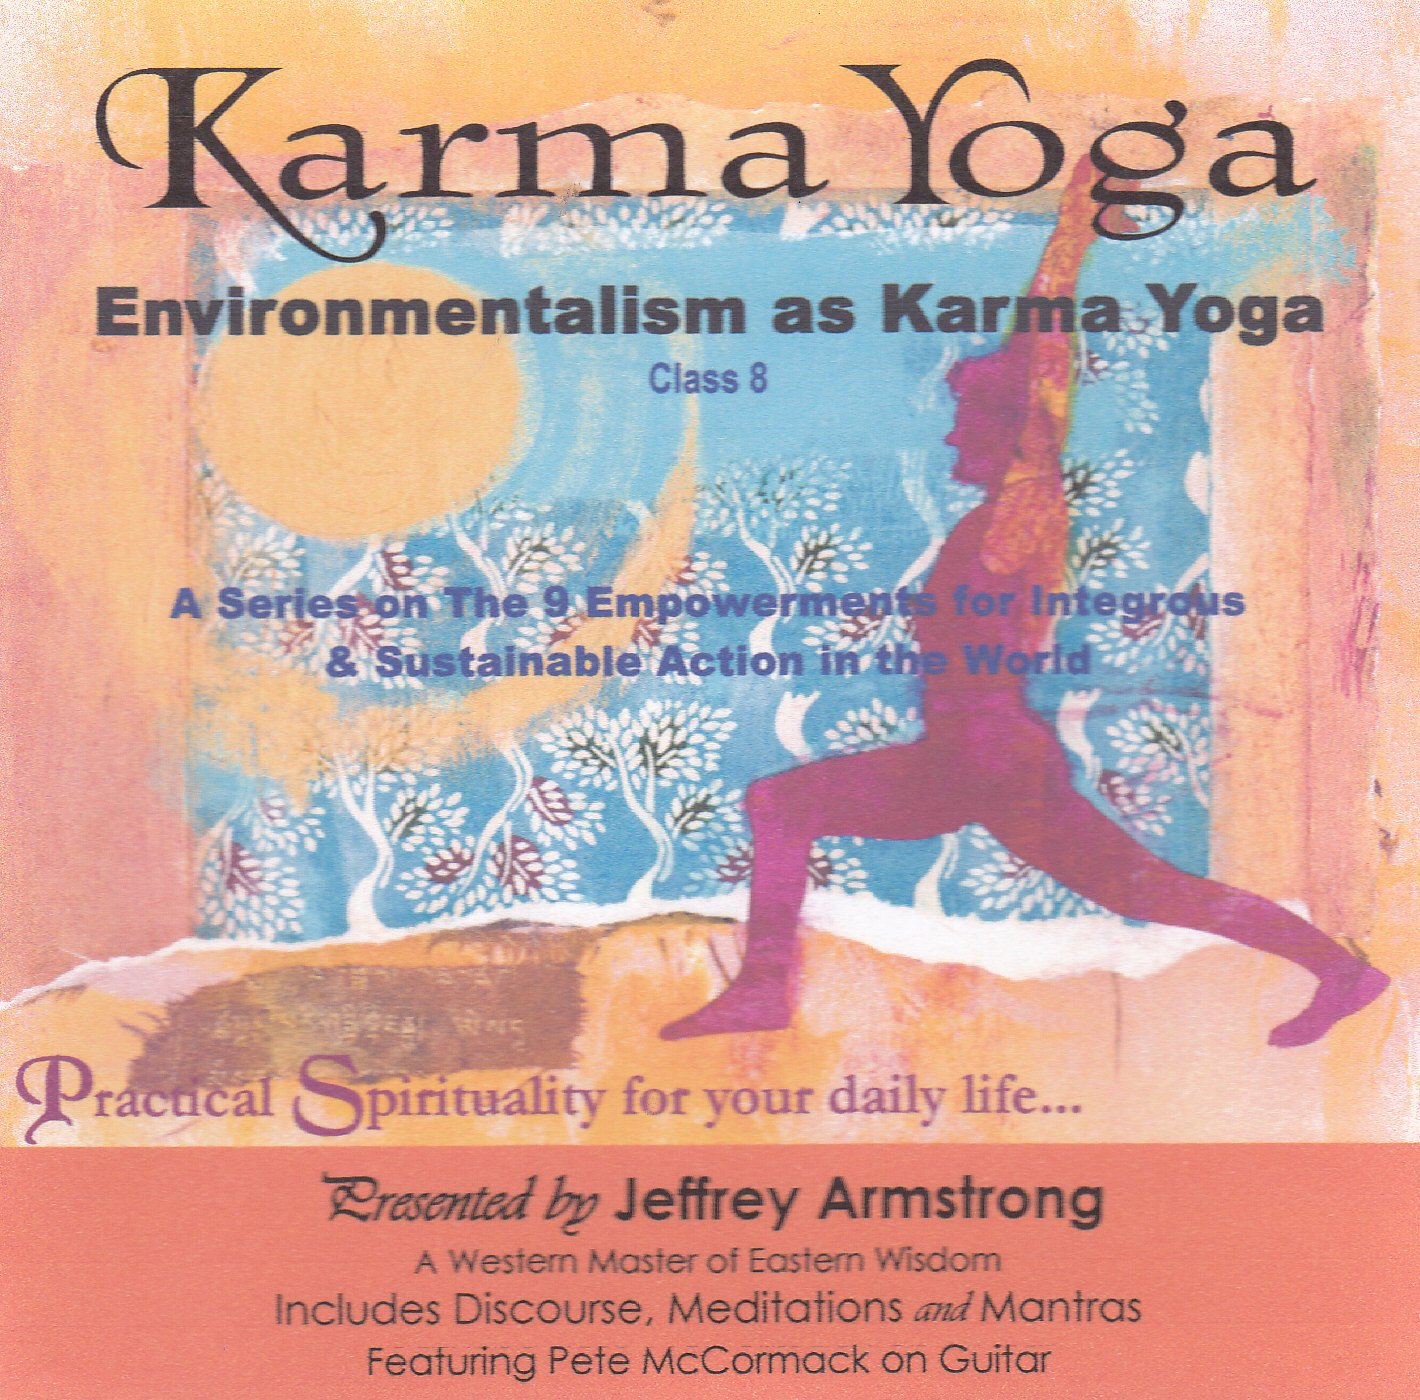 Environmentalism as Karma Yoga (2 CD Set): Amazon.com: Books